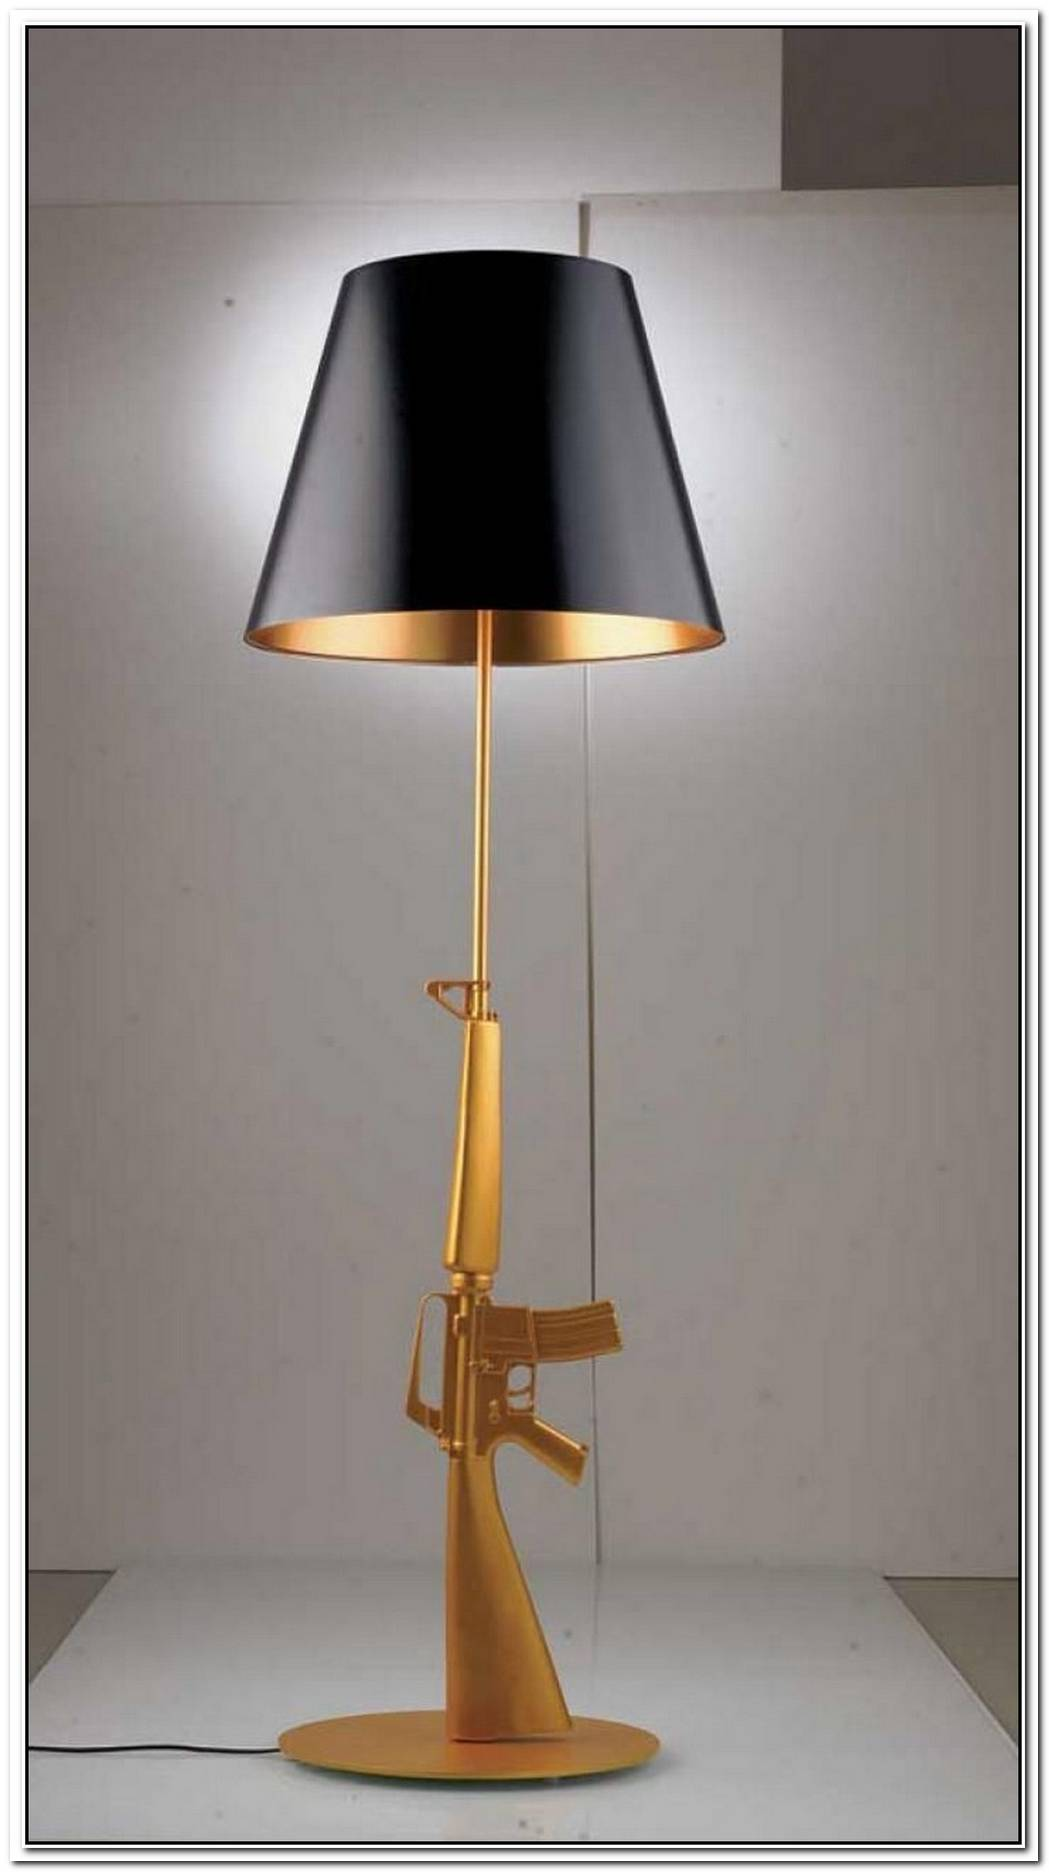 Mysterious Gun Table Lamp